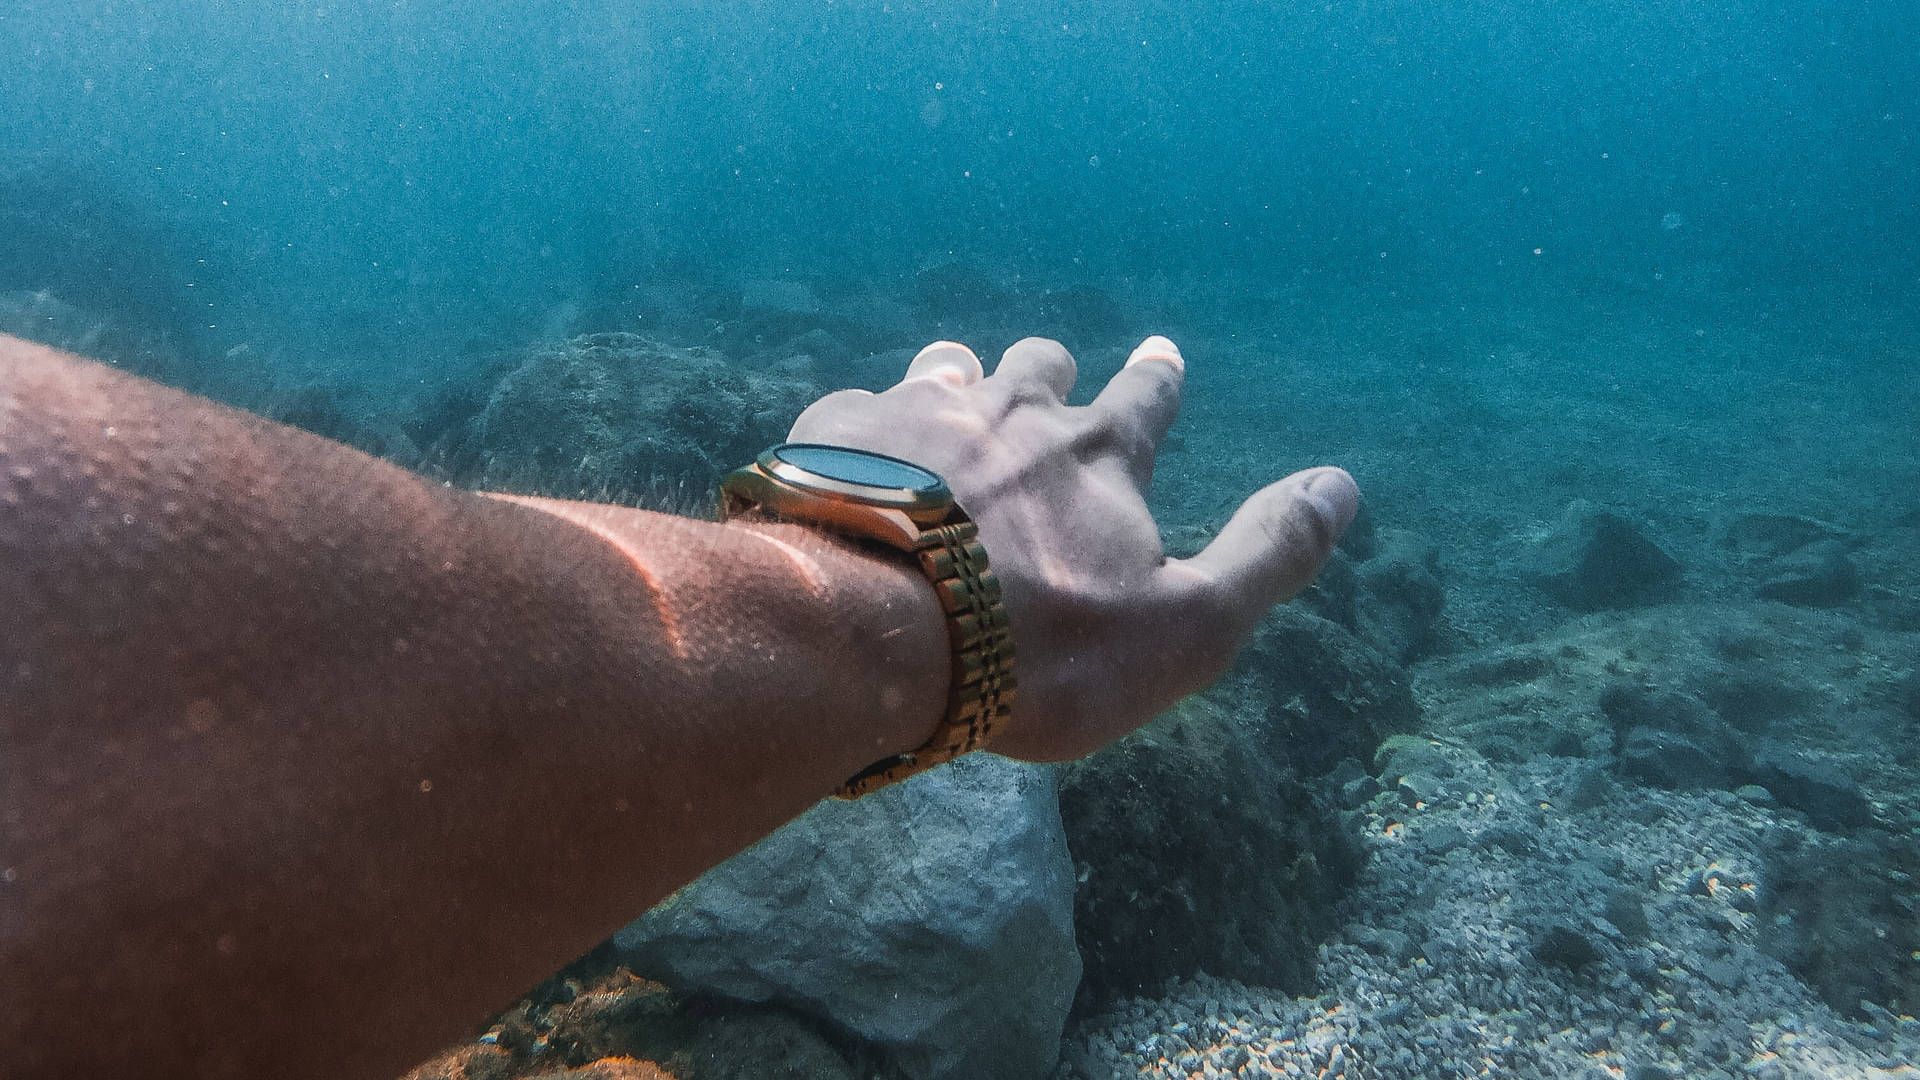 Watch being used underwater after waterproof testing carried out for client in East Kilbride